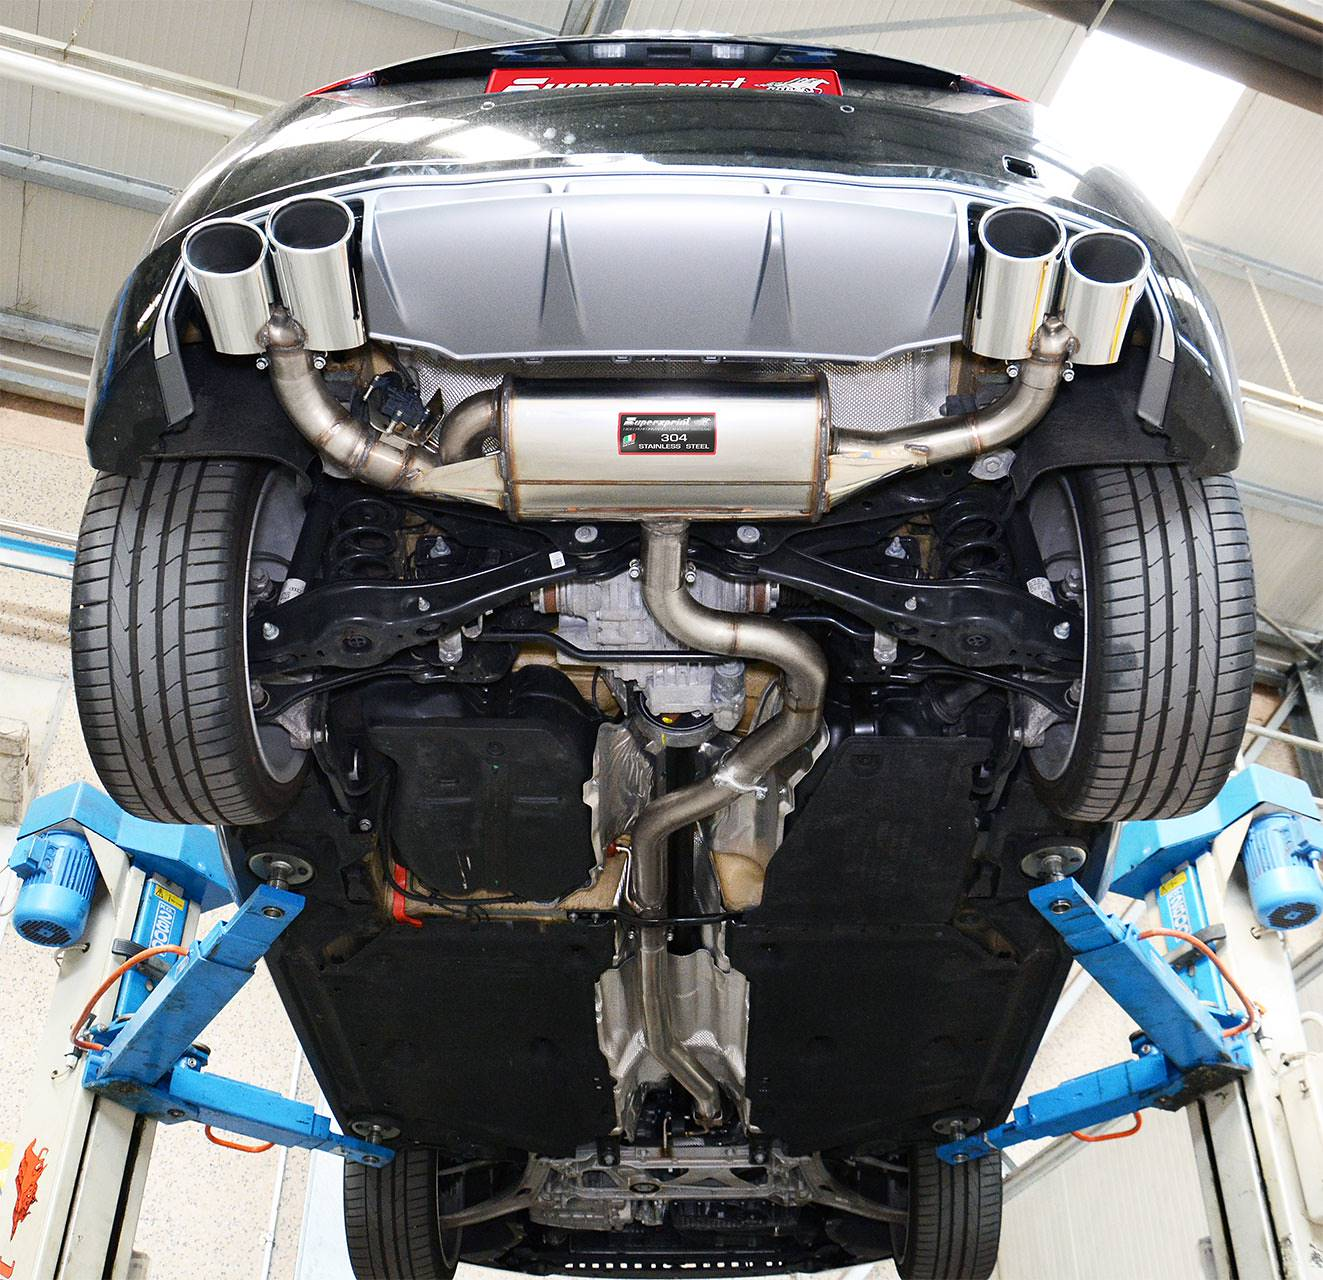 Full sport exhaust Supersprint for Audi TT Mk3 2.0 TFSI quattro installed